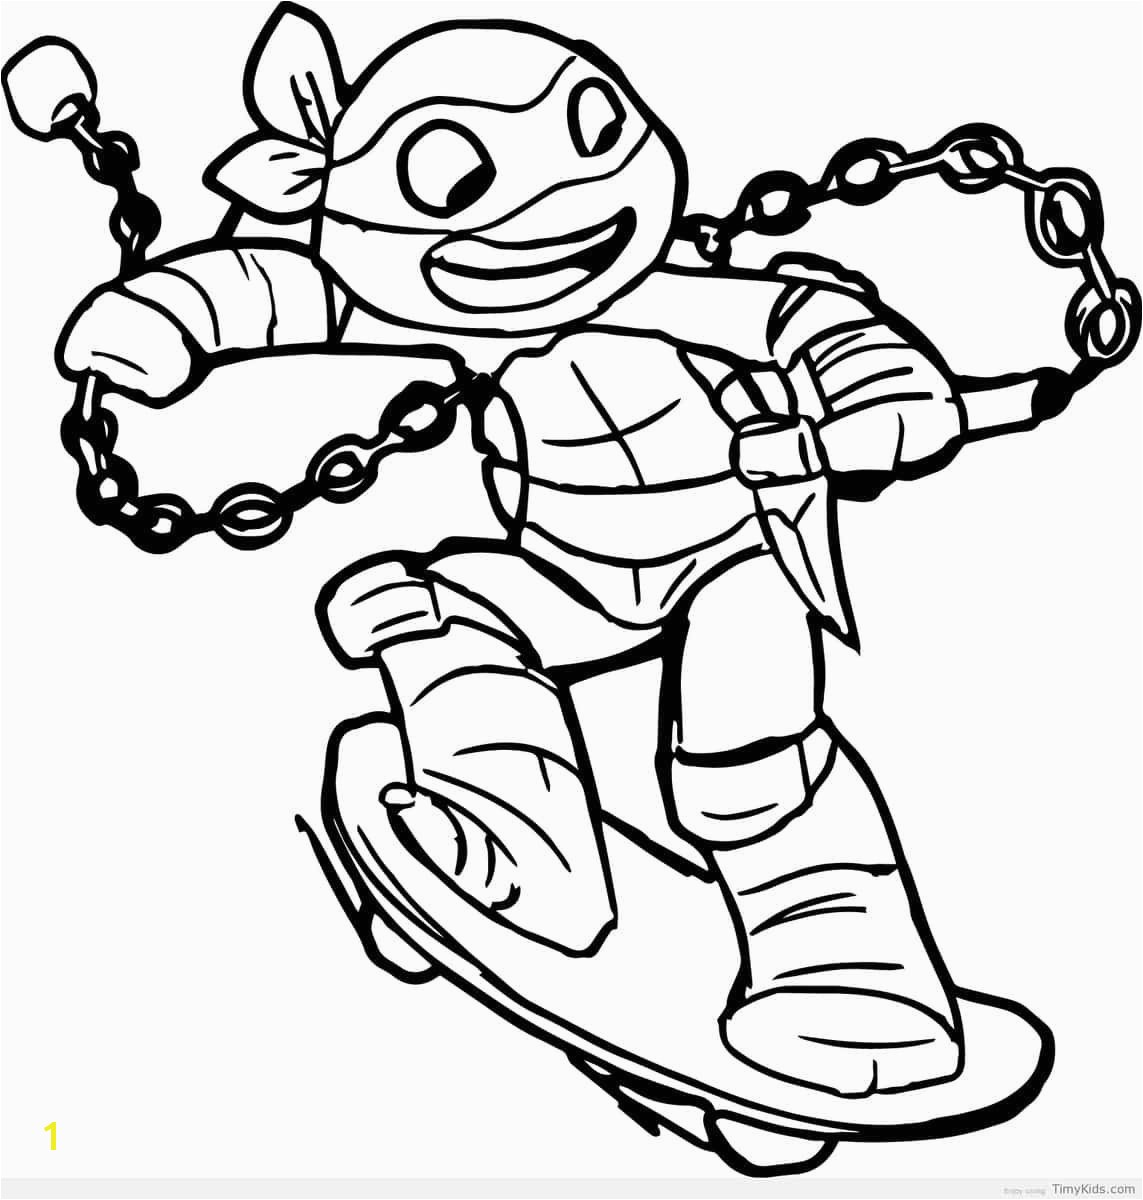 Turtle Coloring Pages Fresh 18luxury Ninja Turtle Coloring Book Clip Arts & Coloring Pages graph